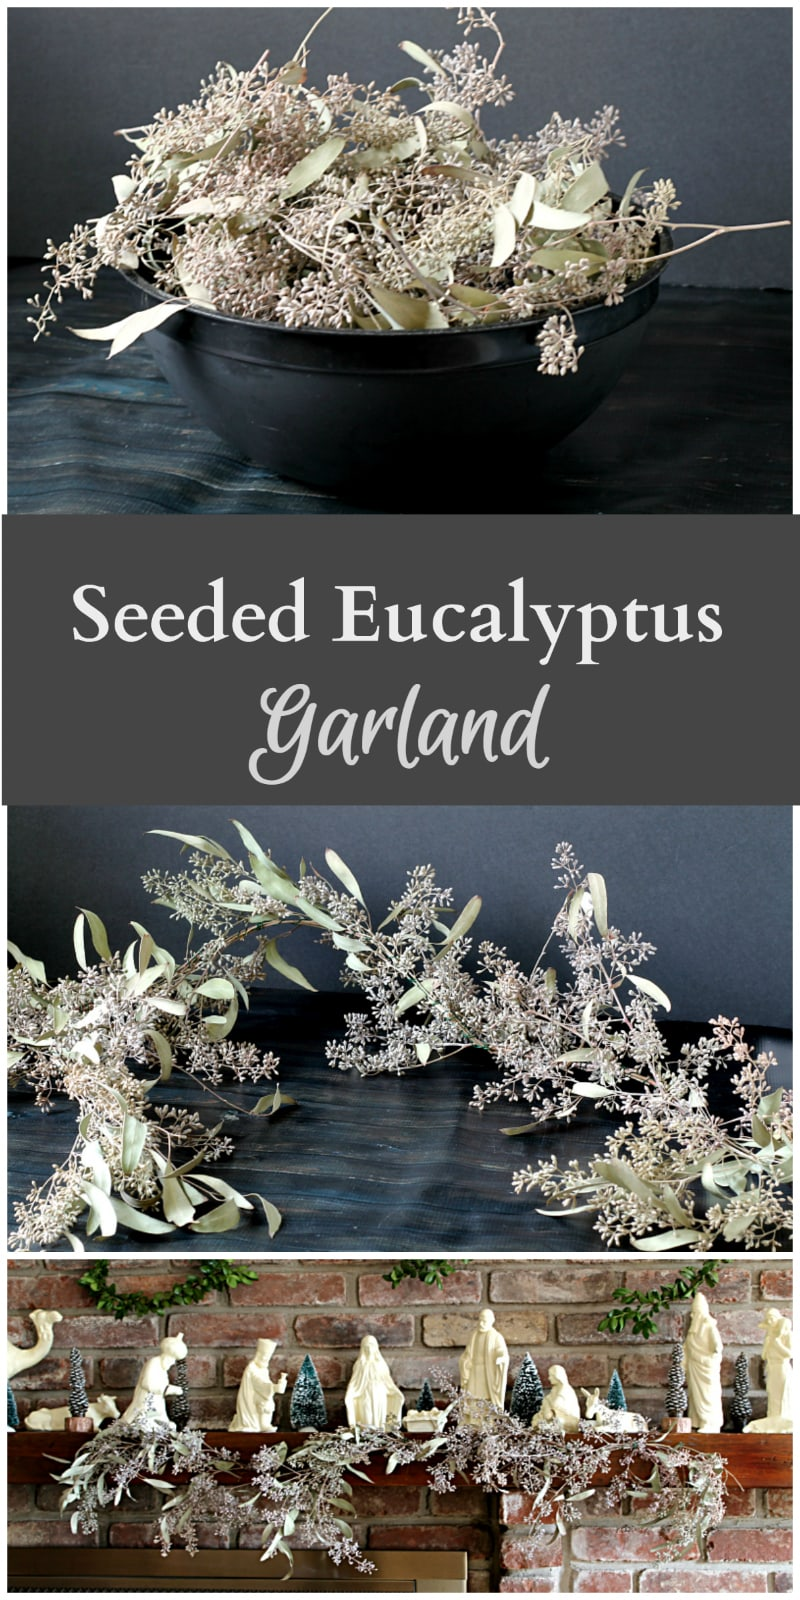 This tutorial for a seeded eucalyptus garland is easy to follow and can be used for a variety of fresh or dried plant materials.